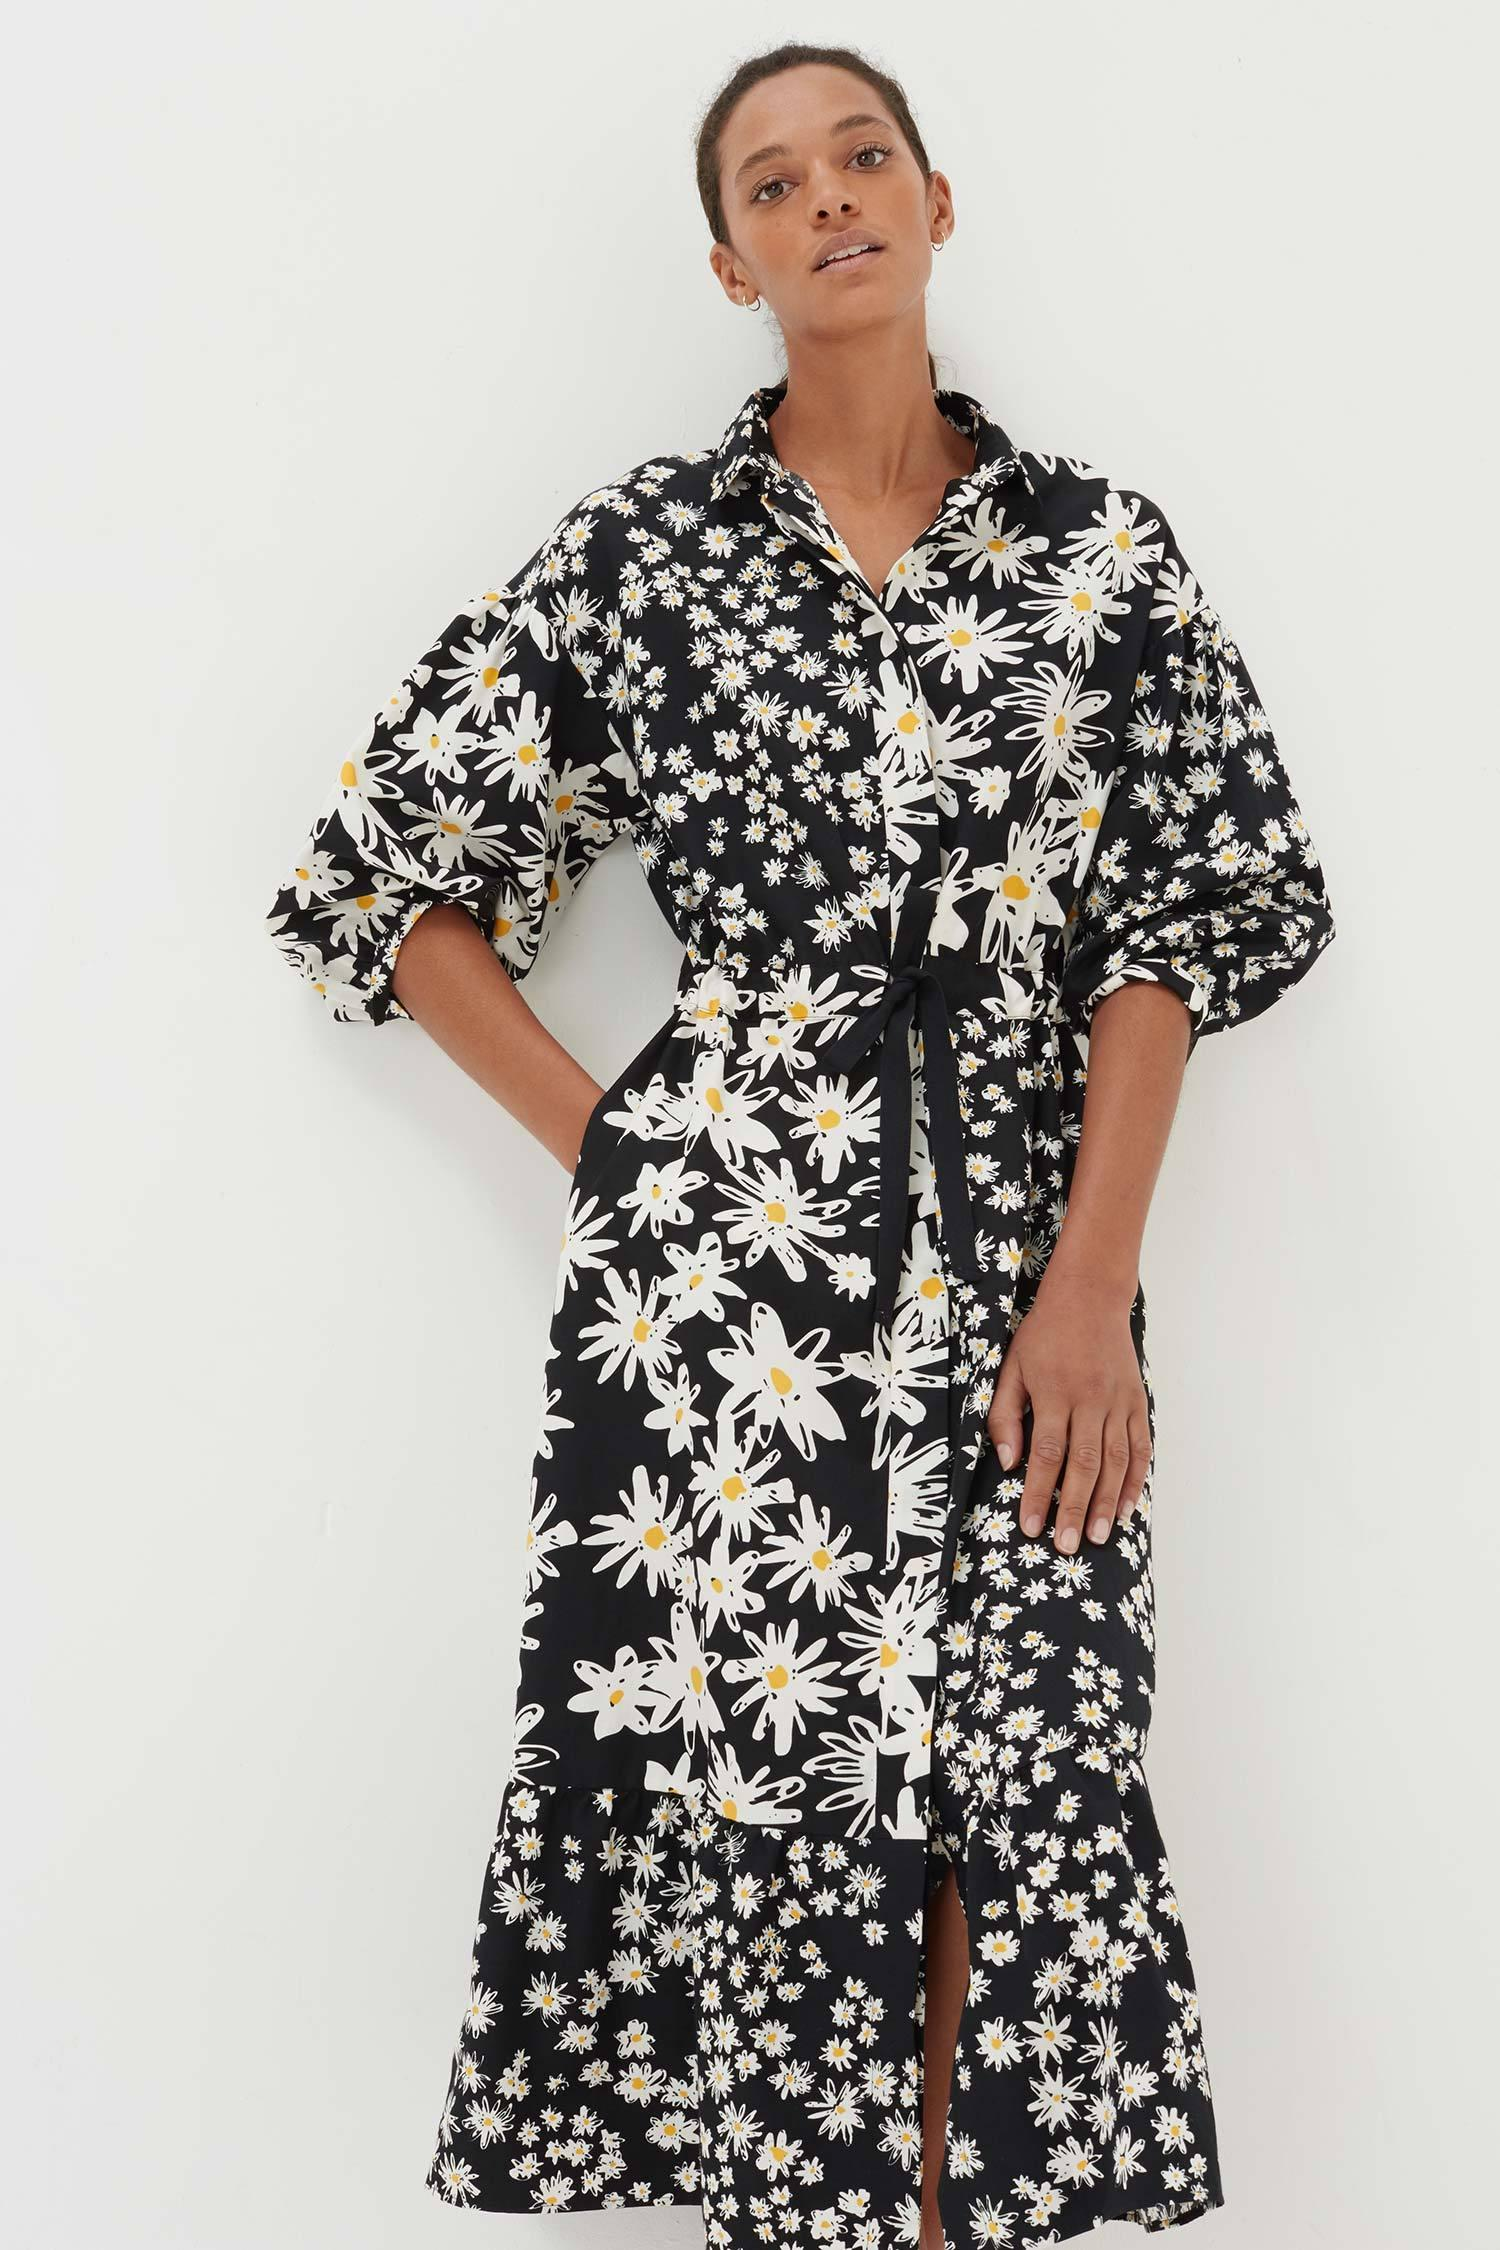 9057d500135c6e Chinti   Parker - Black Floral Print Shirt Dress - Lyst. View fullscreen